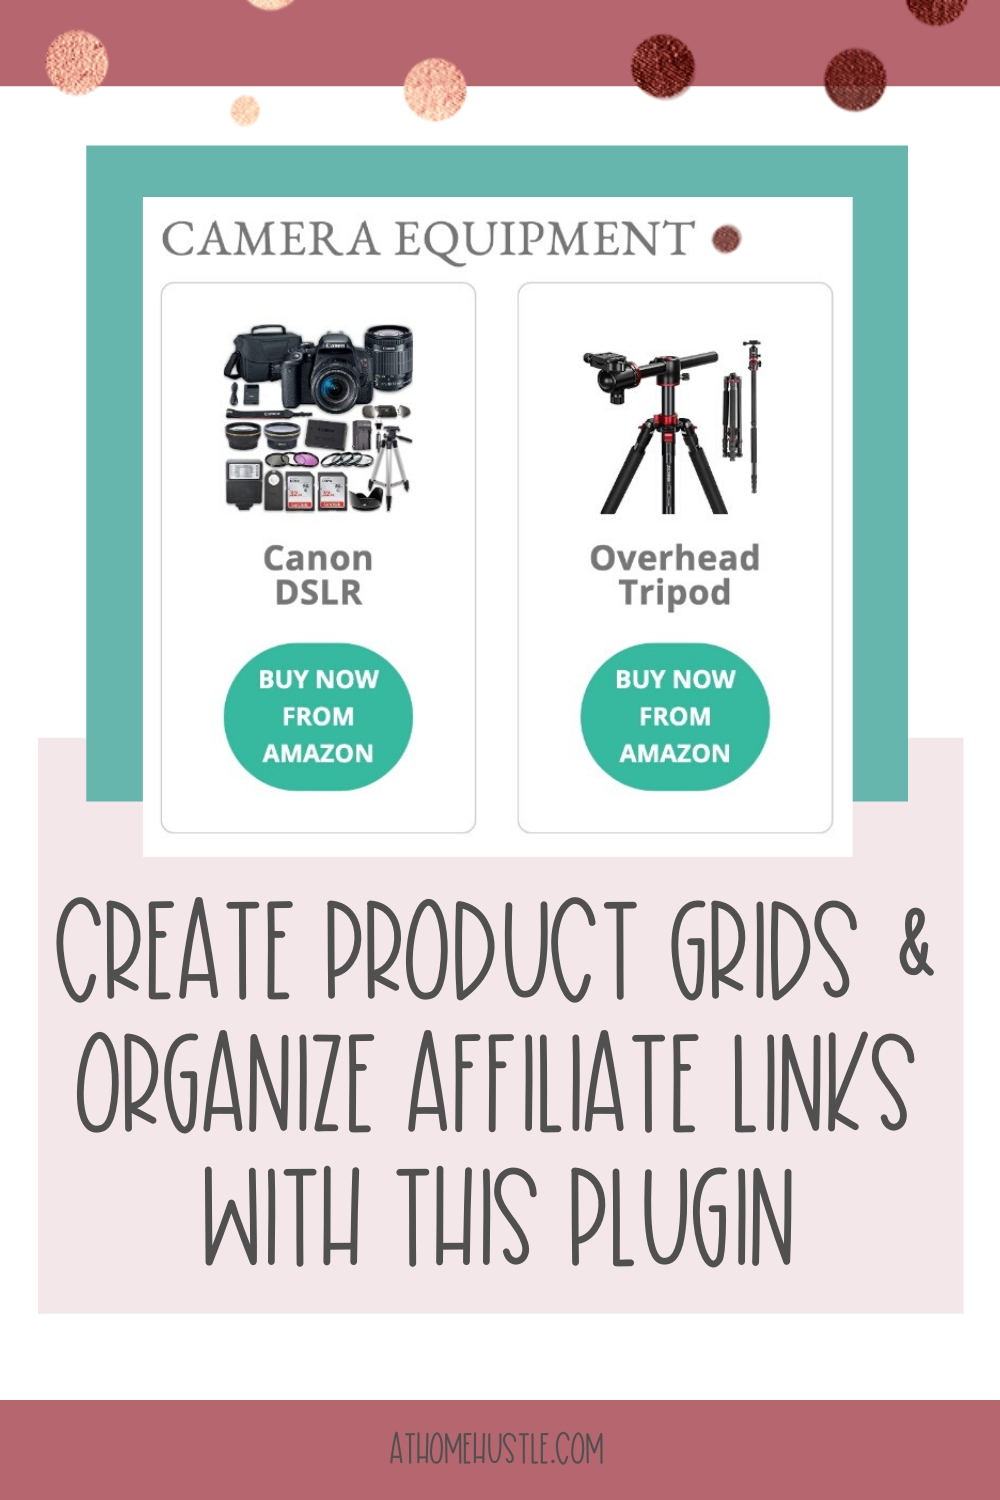 Product grid screenshot to show affiliate link plugin example